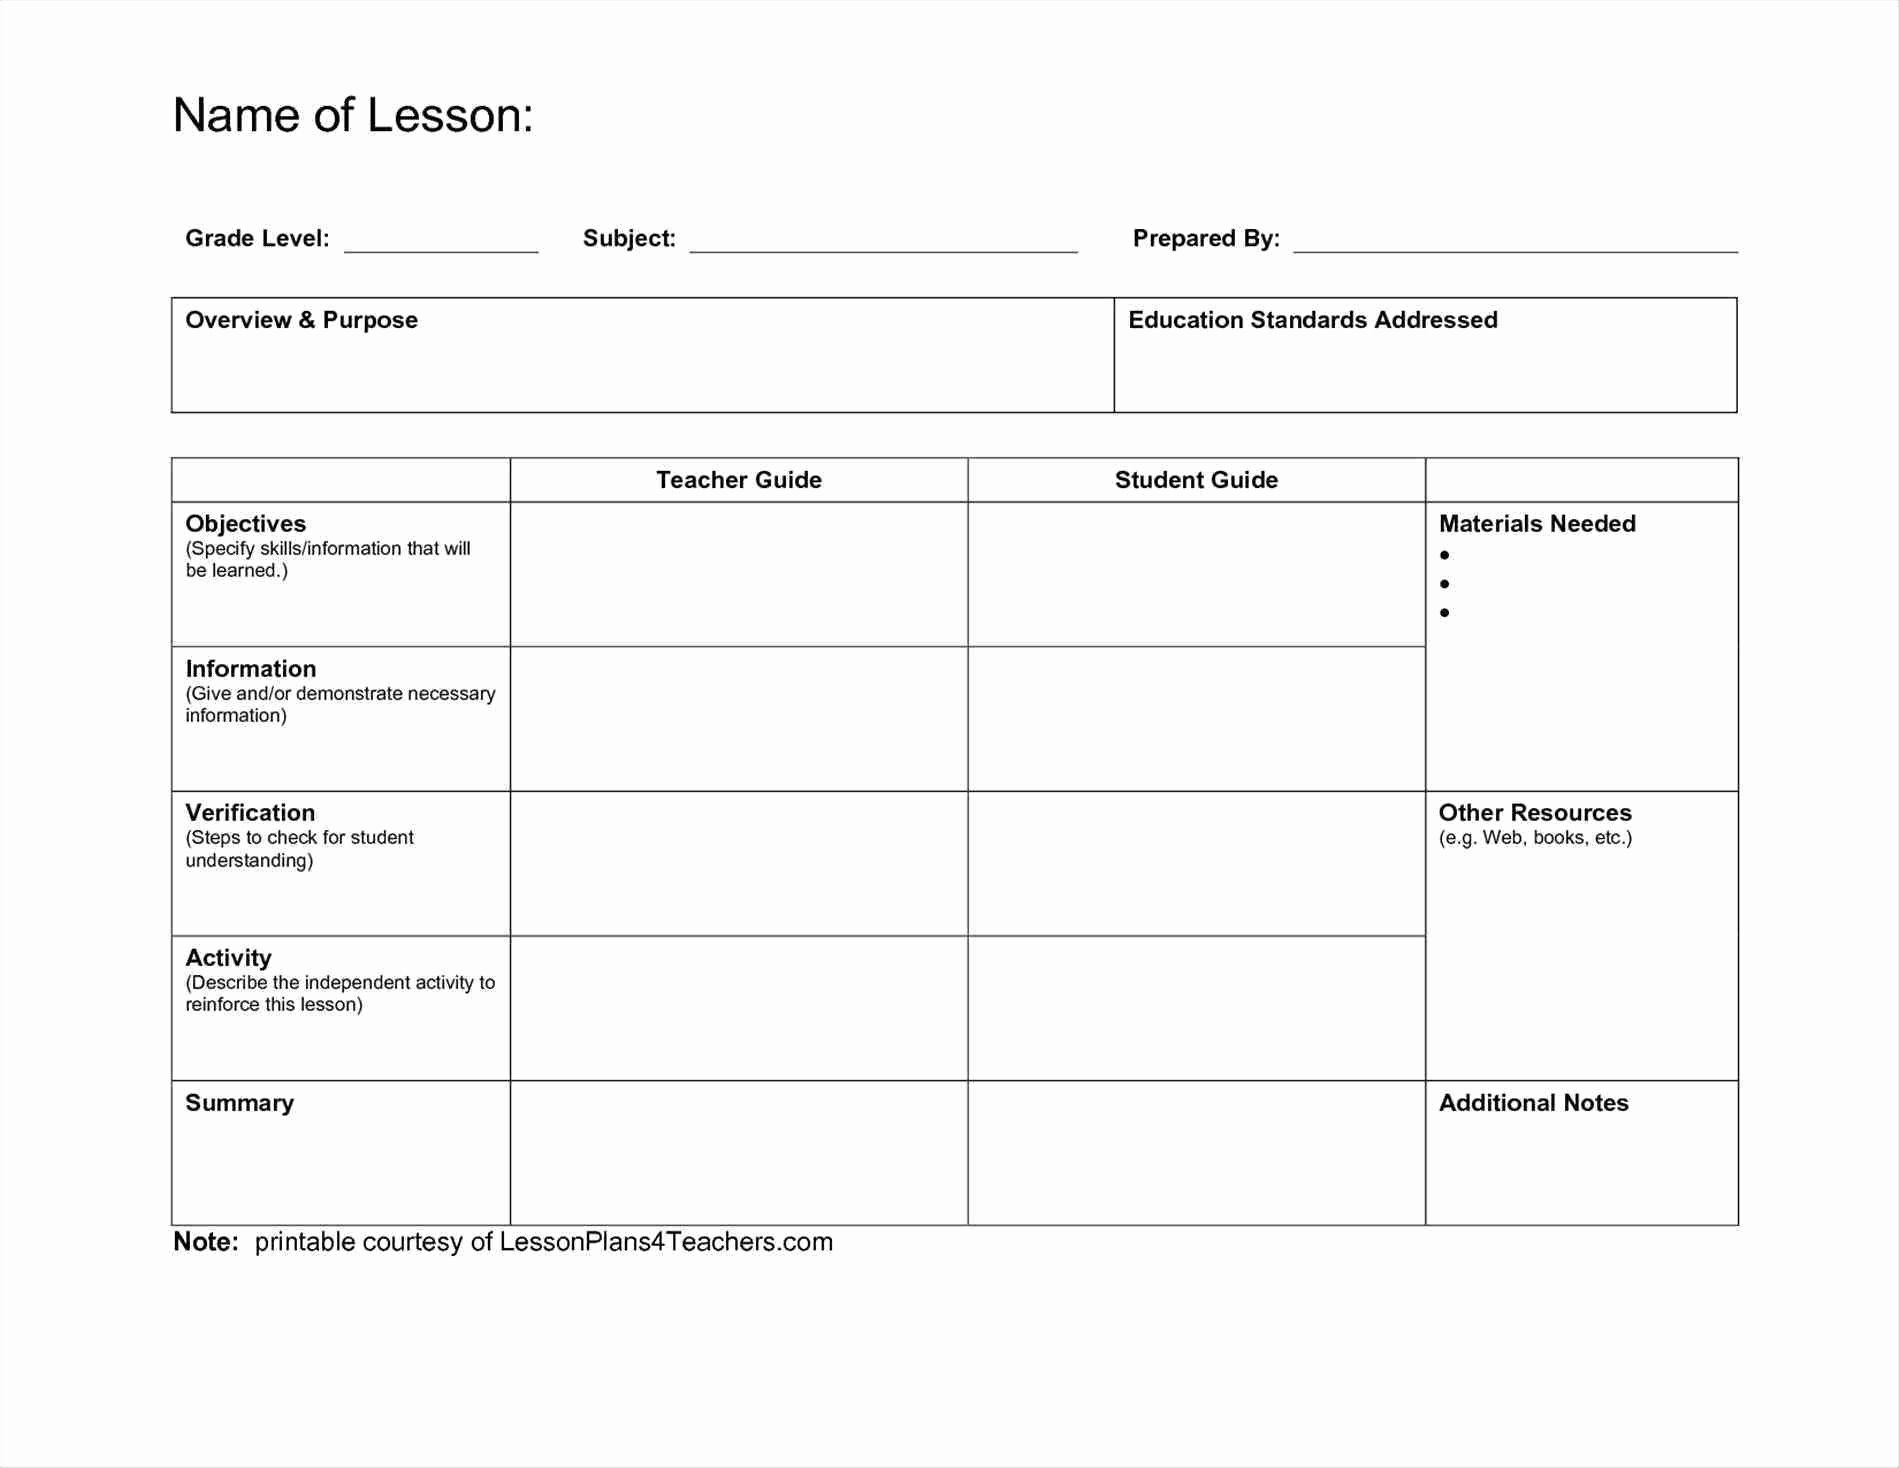 Library Lesson Plan Template Elegant Lesson Planning tools Tips for Teachers Esl Library Blog